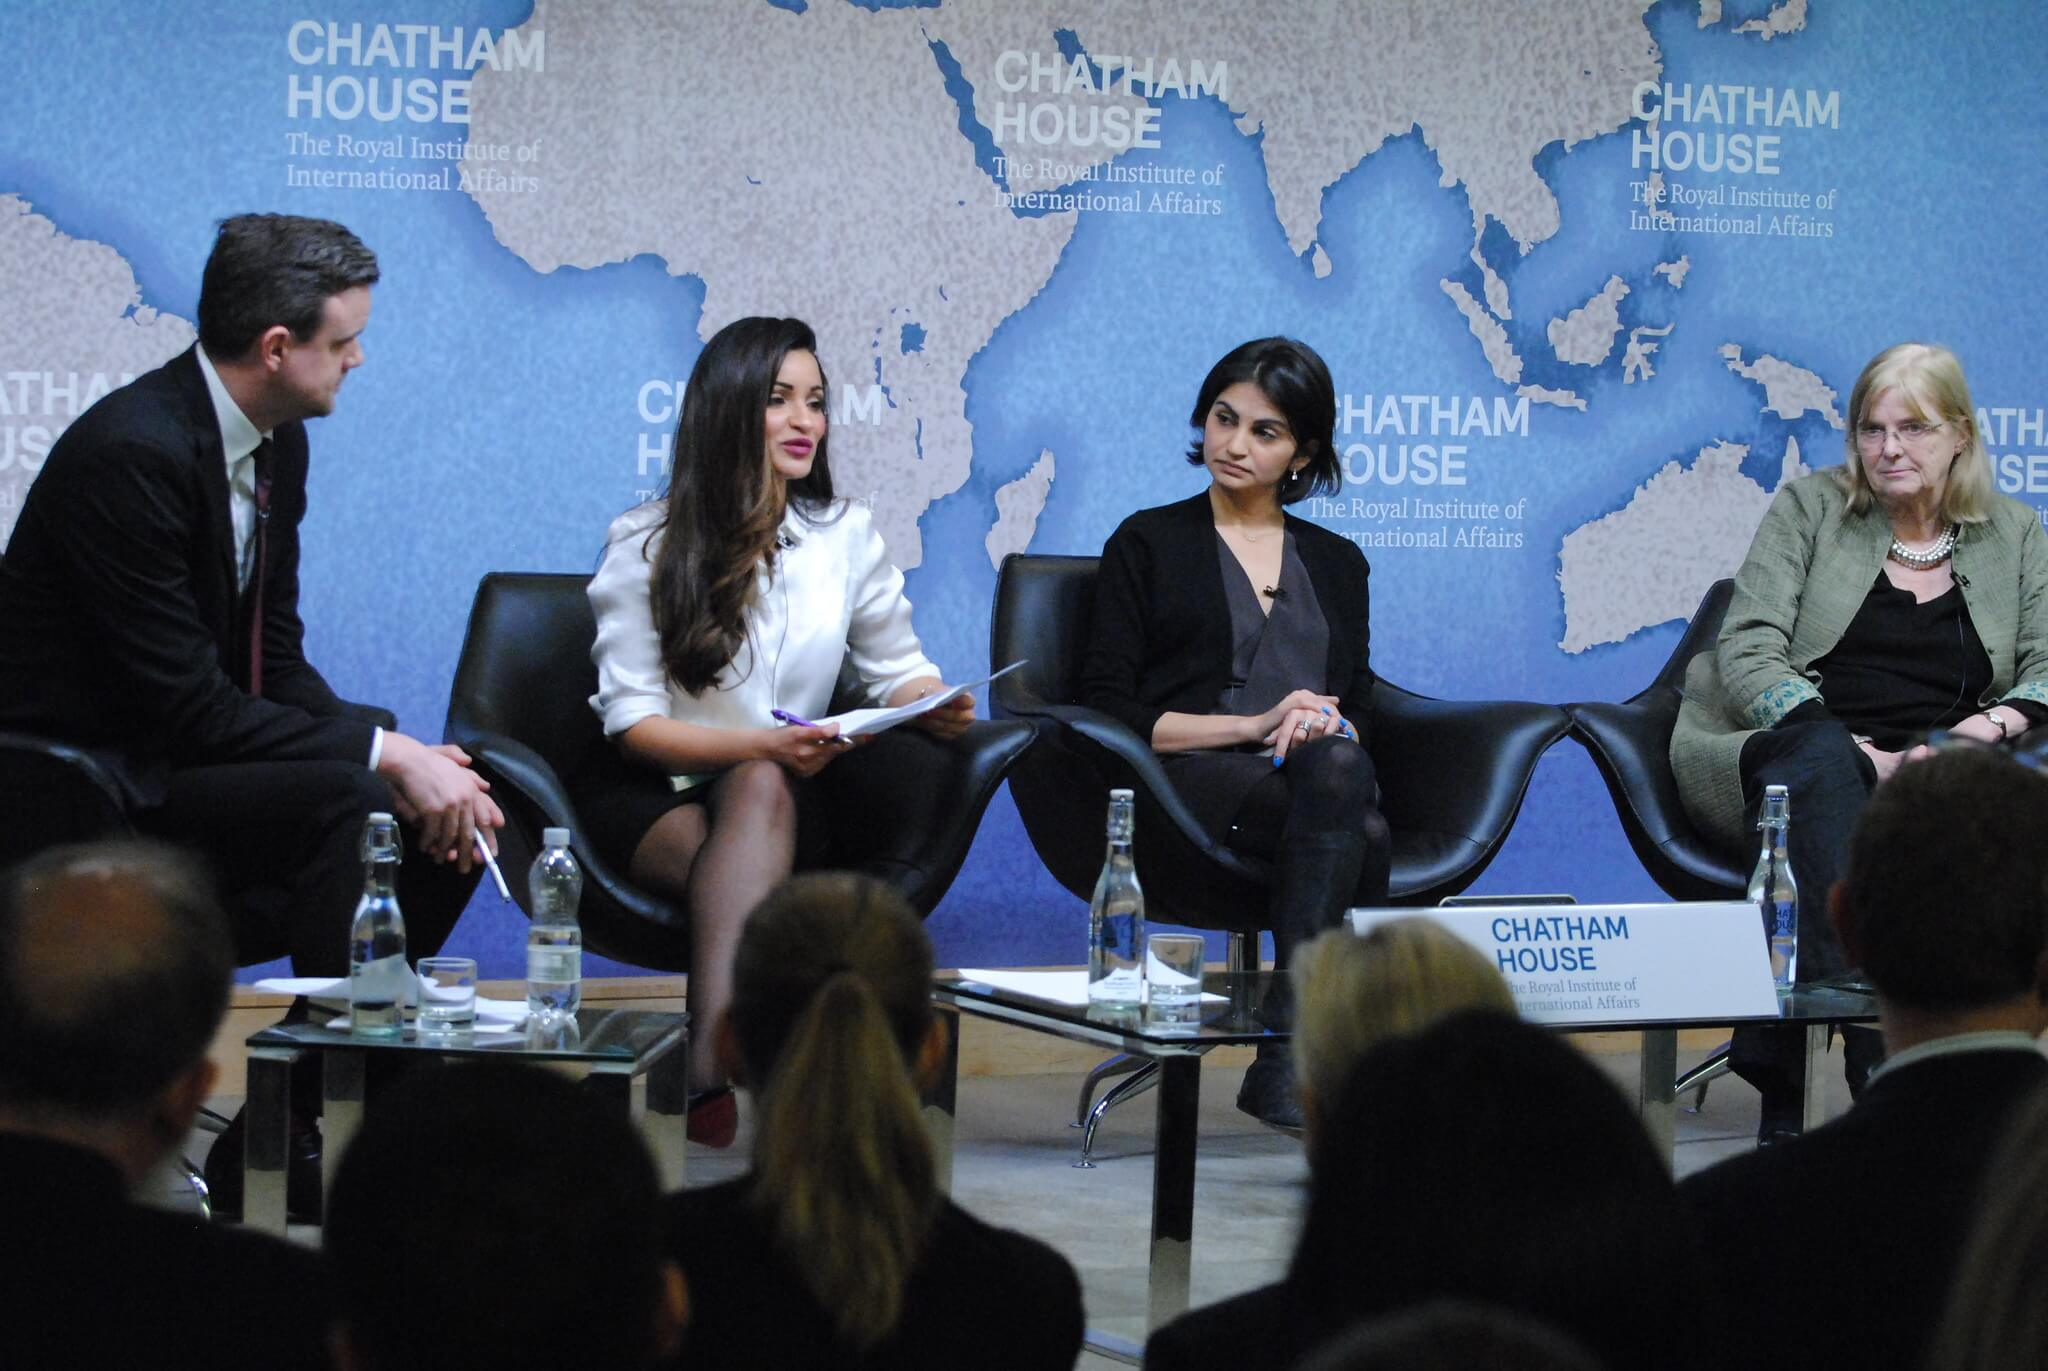 Bijeenkomst 'The Future for Women in Saudi Arabia' in 2017 in Chatham House, Londen. © Chatham House / Flickr